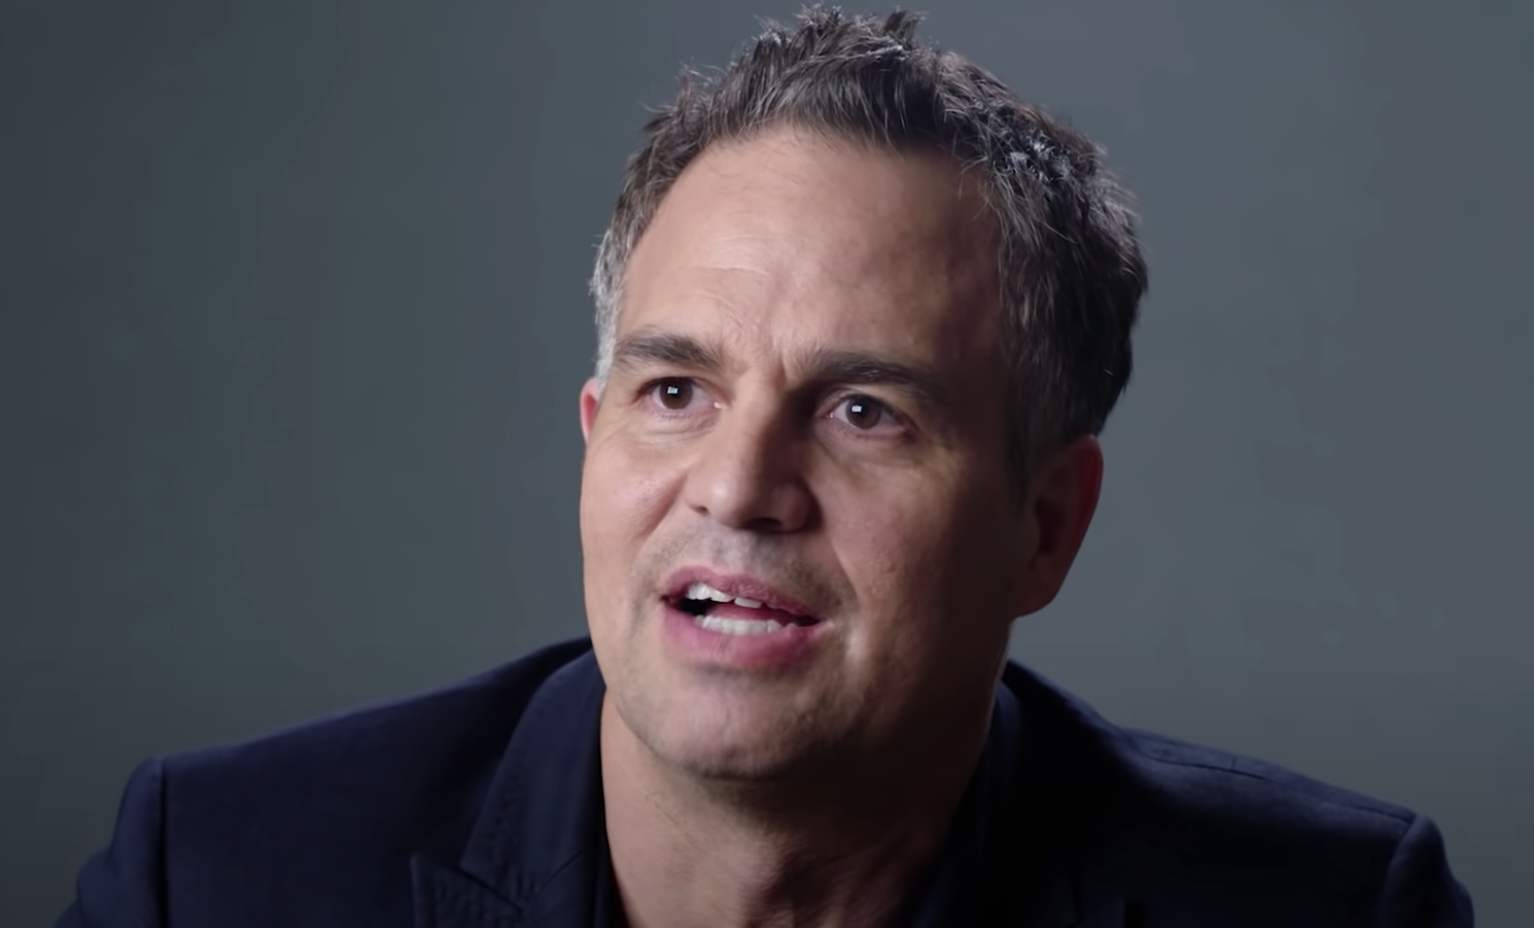 Hollywood Bernie Bro Mark Ruffalo Falls in Love With Recent 'LincolnProject' Ad